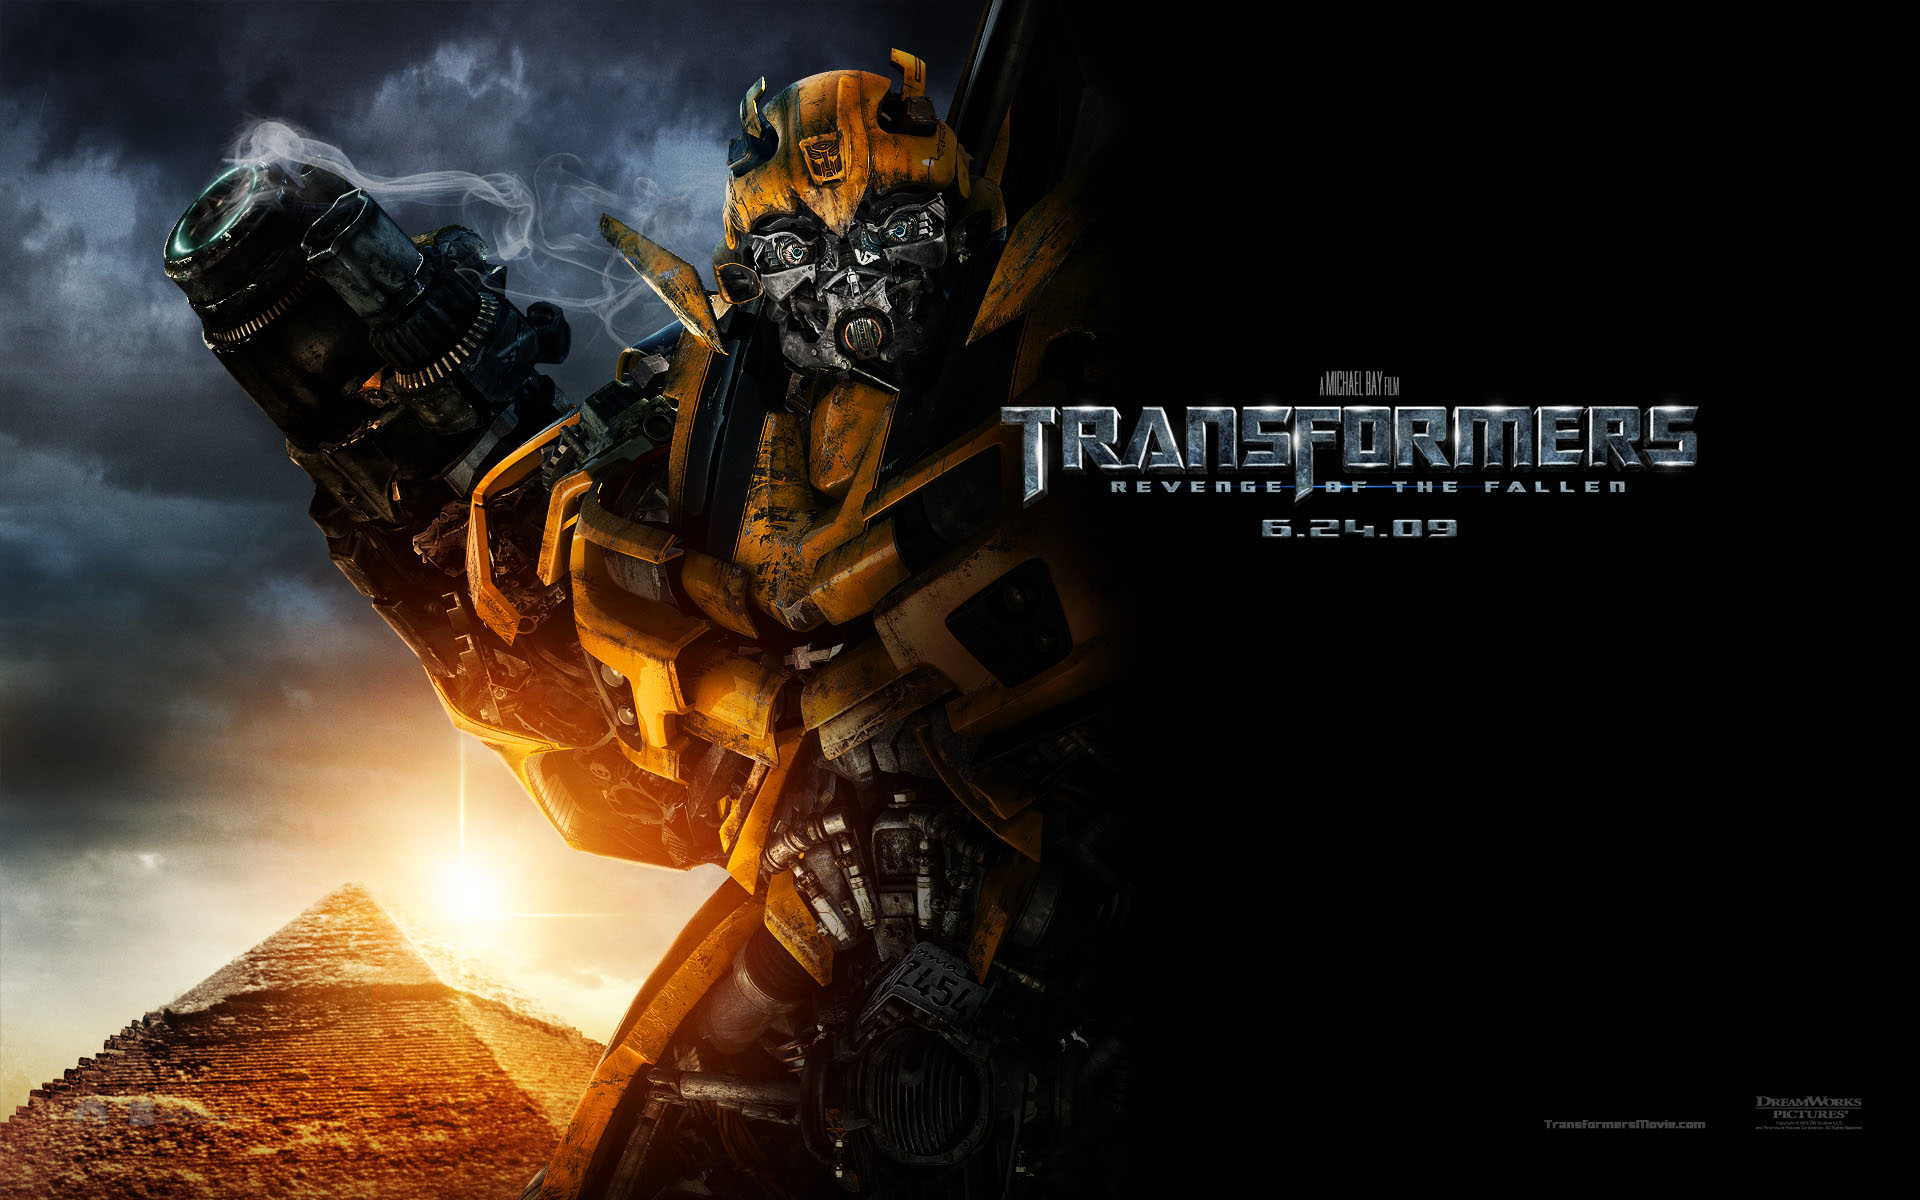 bumble bee autobot in transformers revenge of the fallen wallpaper 1920x1200